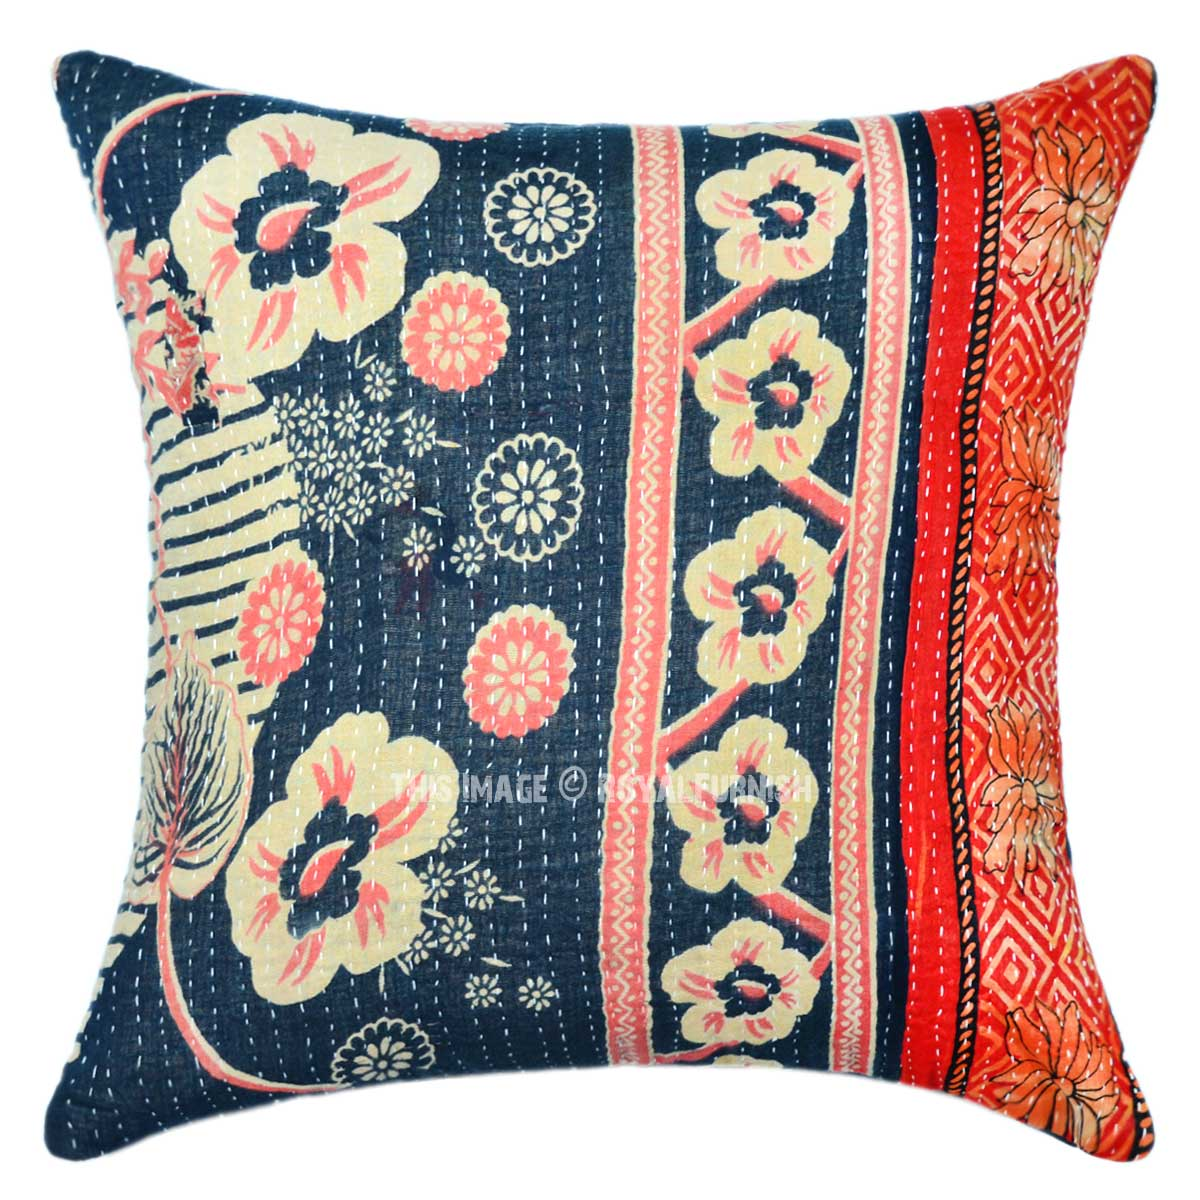 Modern Ring Pillows : Black Multi Flower Ring Unique Contemporary Kantha Pillow Case 16X16 - RoyalFurnish.com